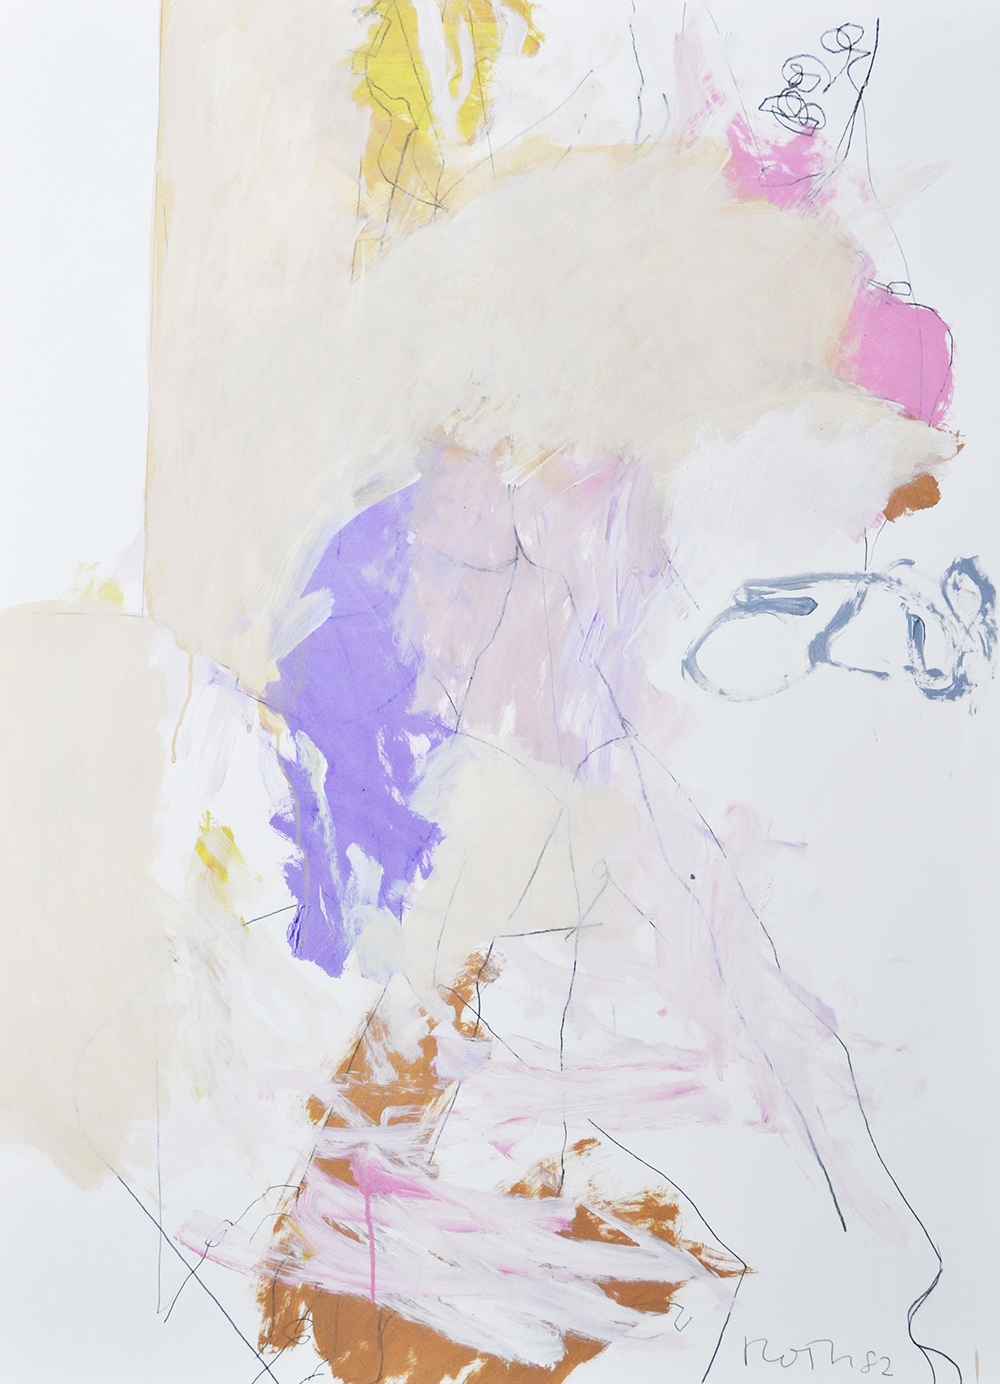 #507 Untitled,   Acrylic on paper, 1982, 50 x 38 1/2 inches